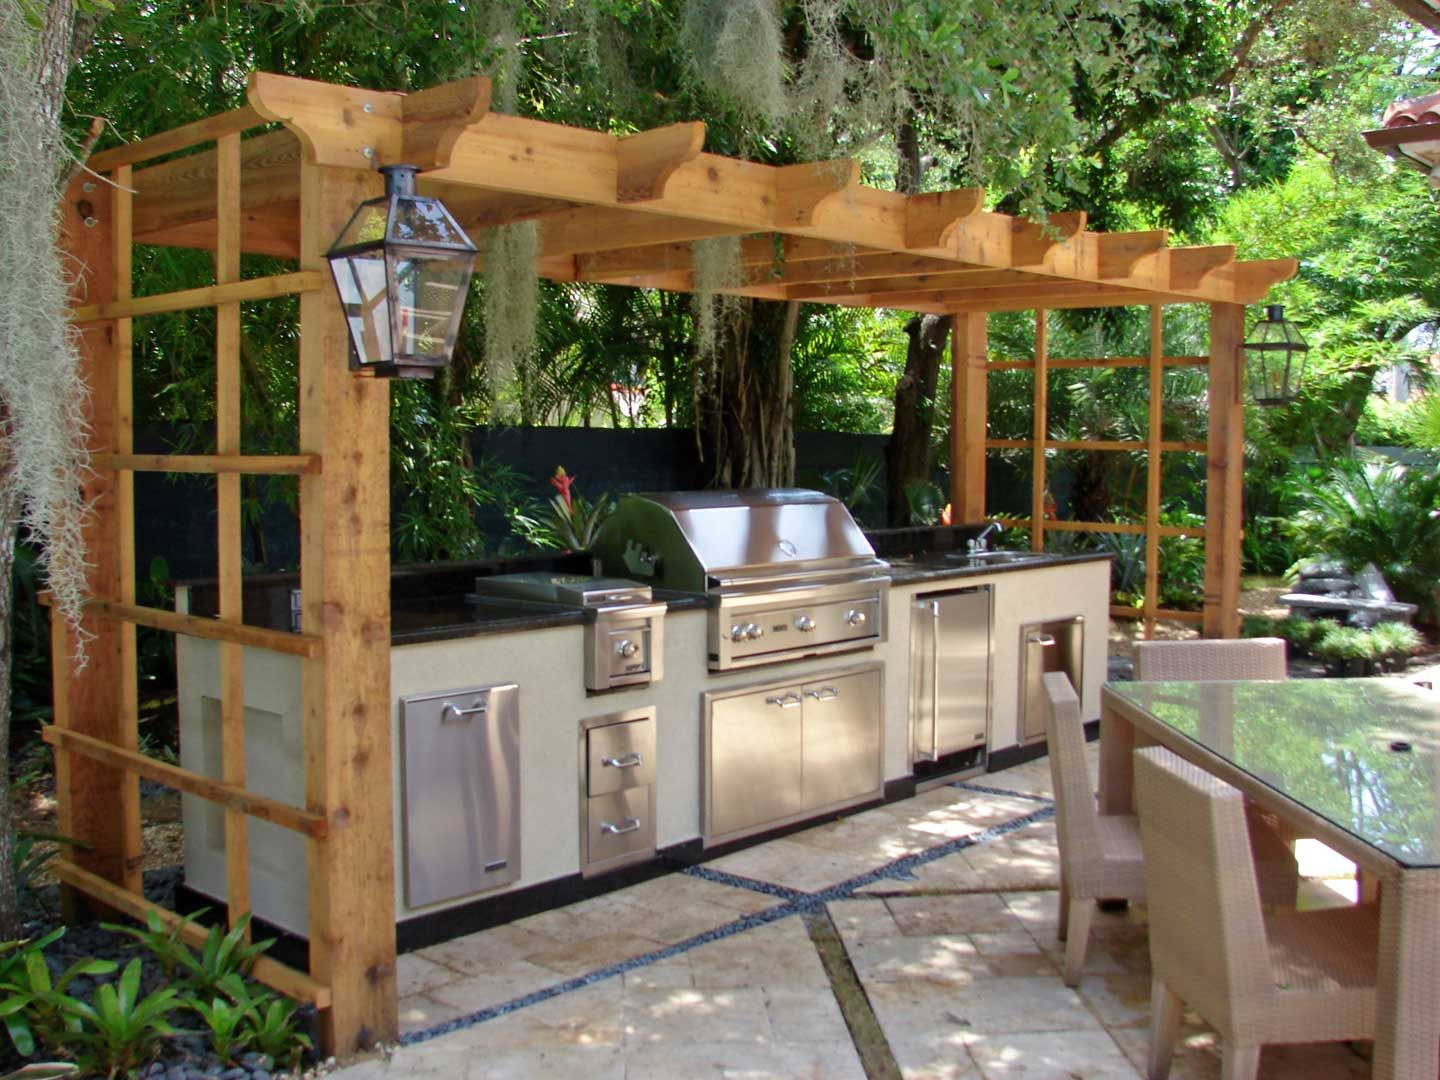 Outdoor Grill Design Ideas excellent outdoor kitchen island designs cool and best ideas Find This Pin And More On Outdoor Kitchen Ideas